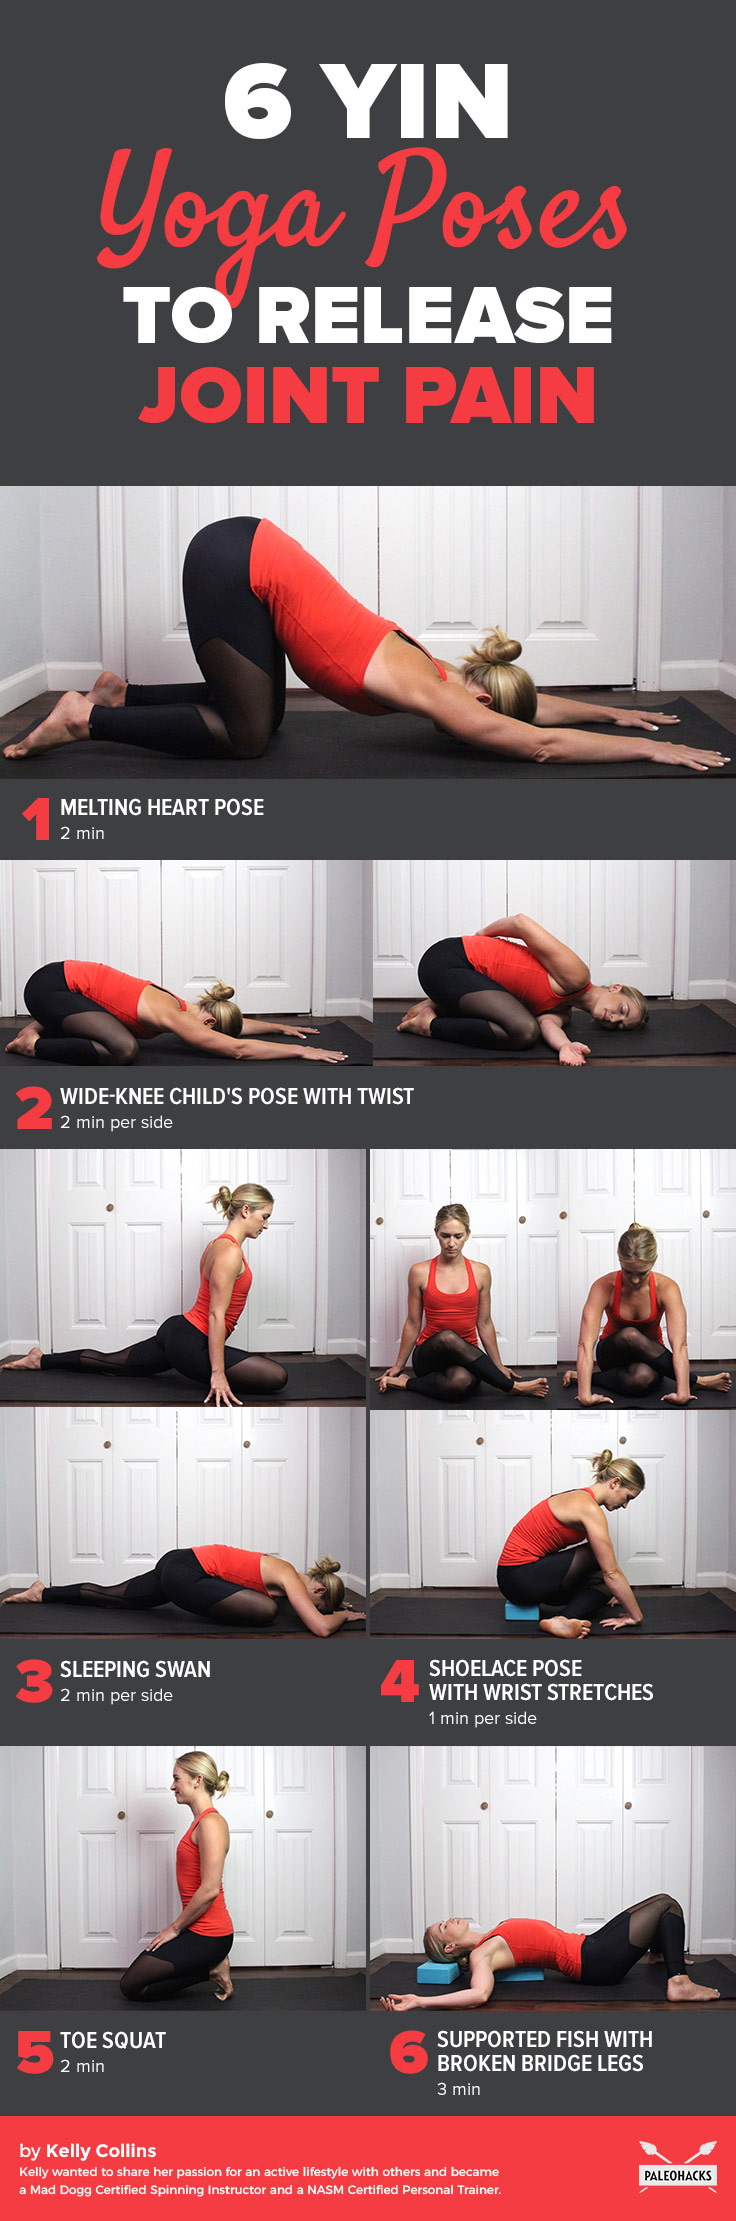 6 yin yoga poses to release joint pain paleohacks 6 yin yoga poses to release joint pain solutioingenieria Image collections